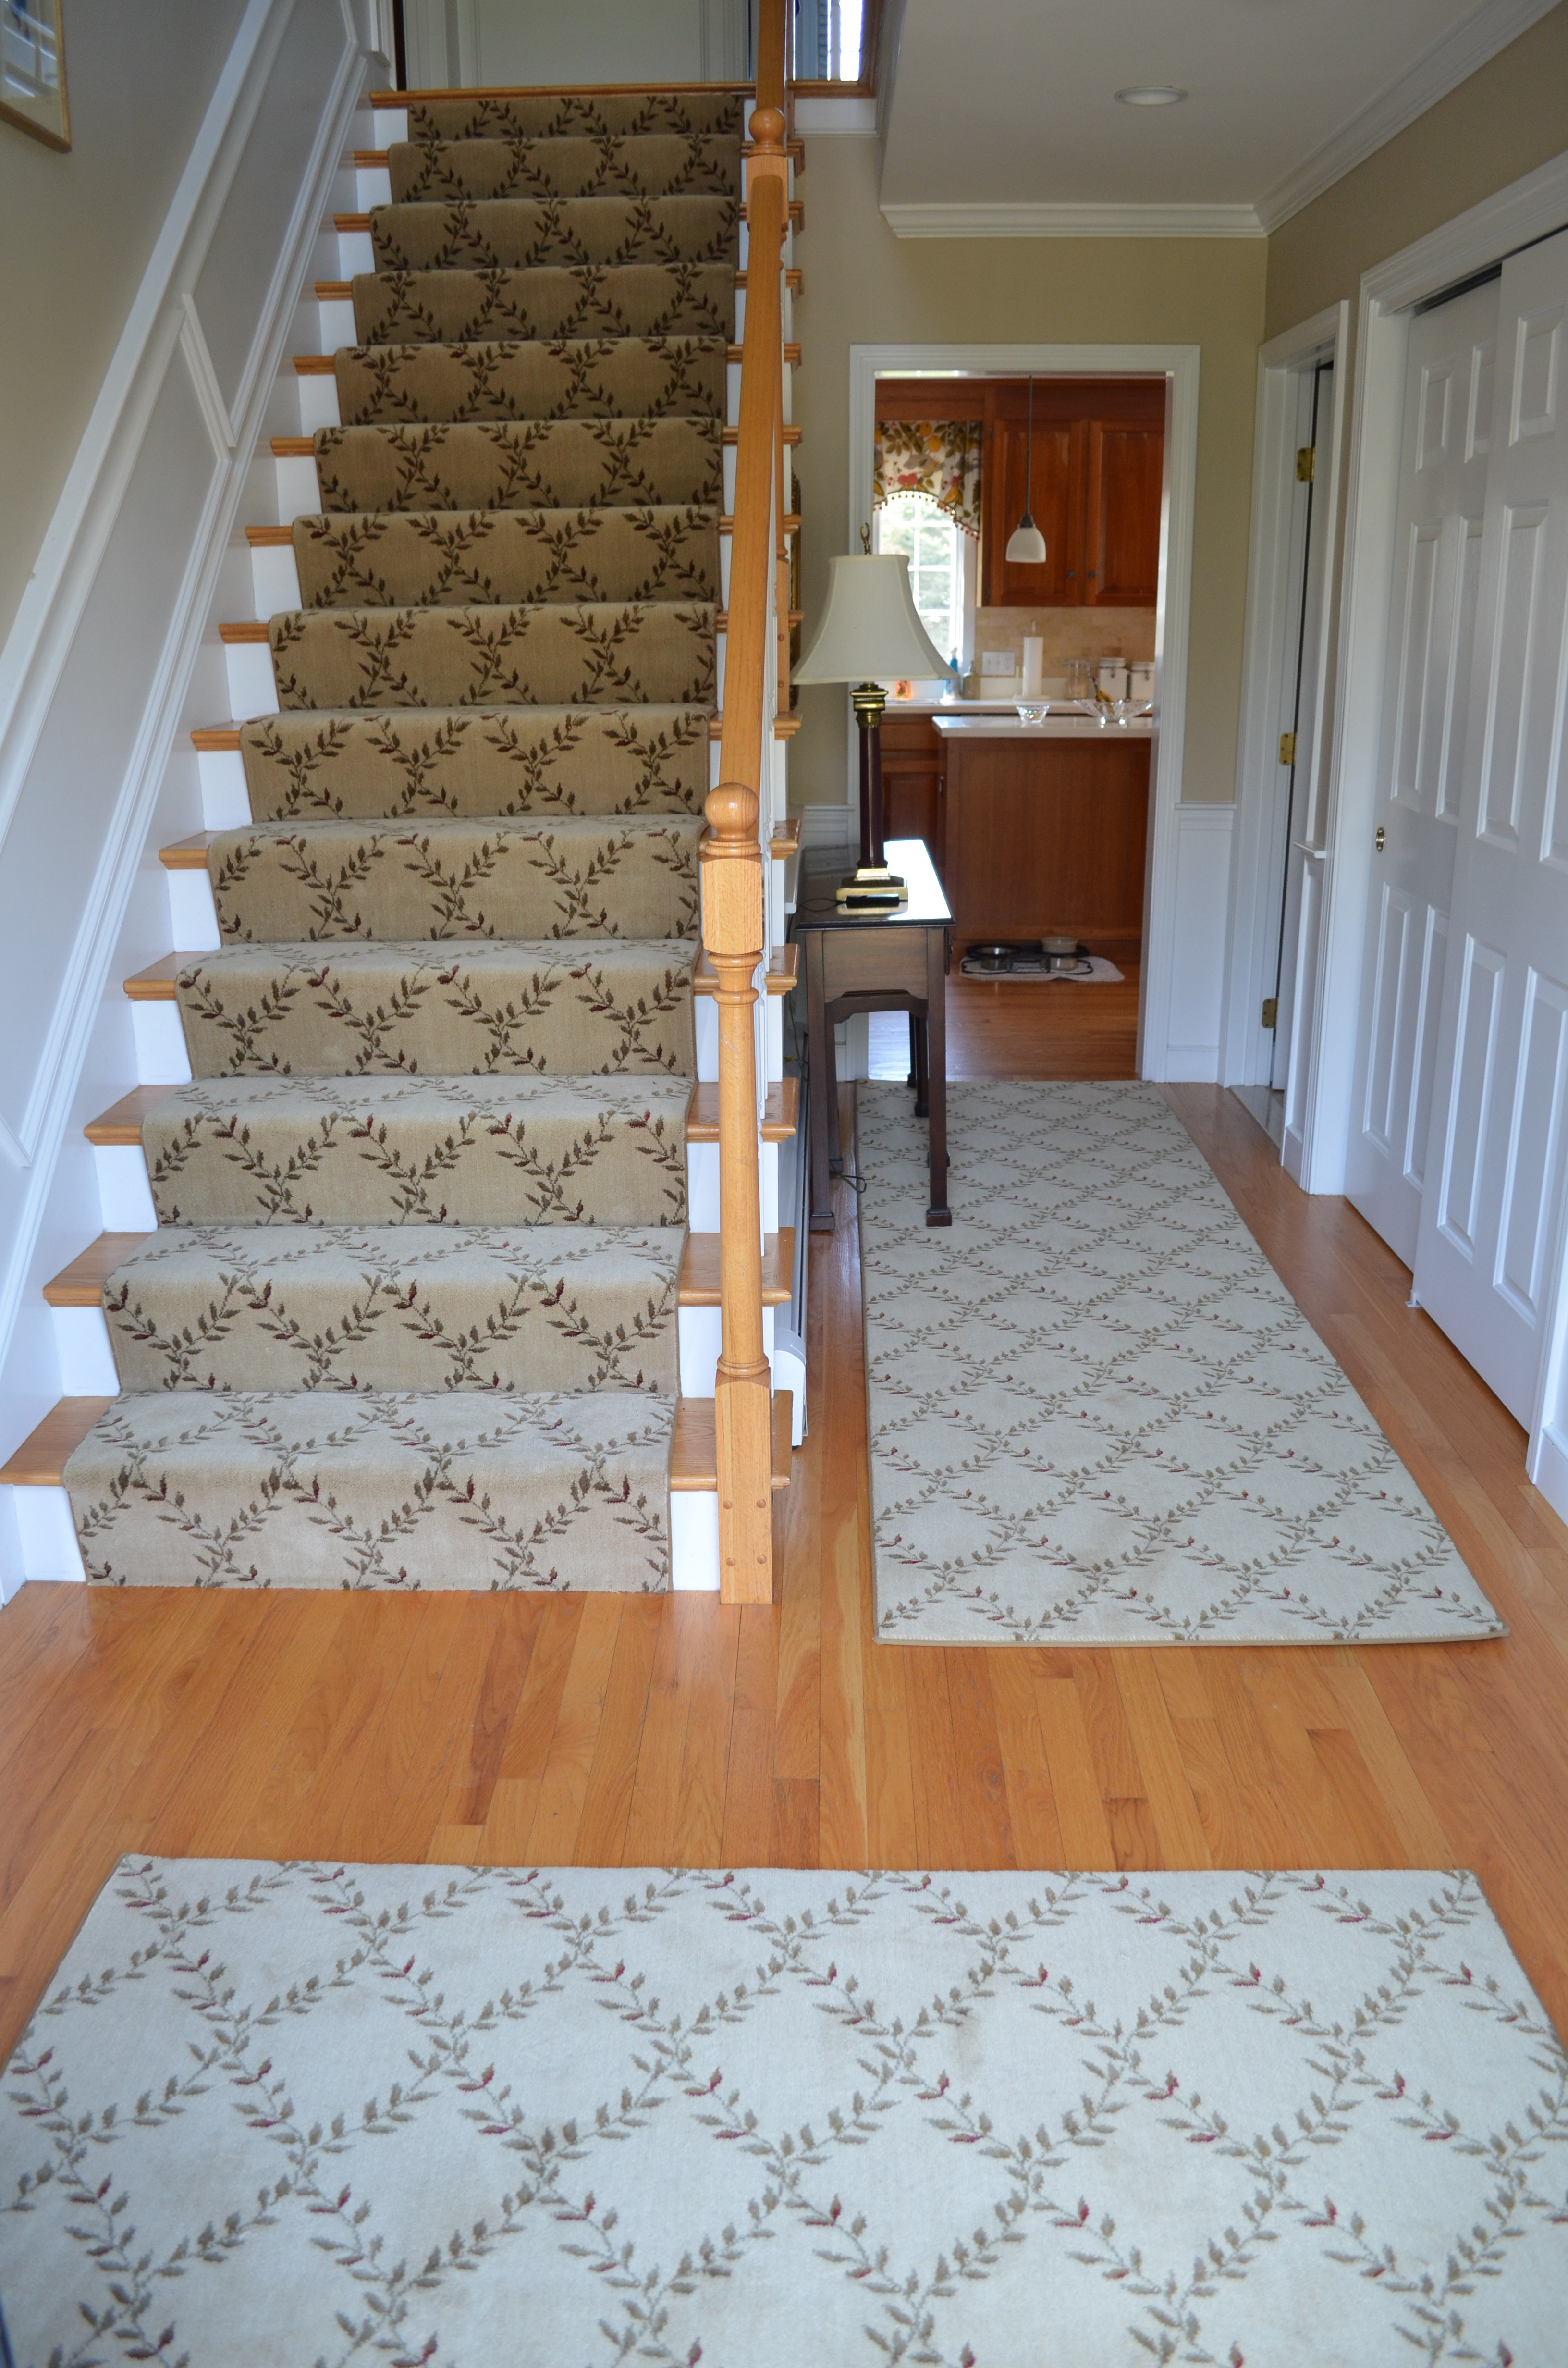 Carpet Runner For Stairs Intended For Carpet Runners For Stairs And  Hallways (#9 Of